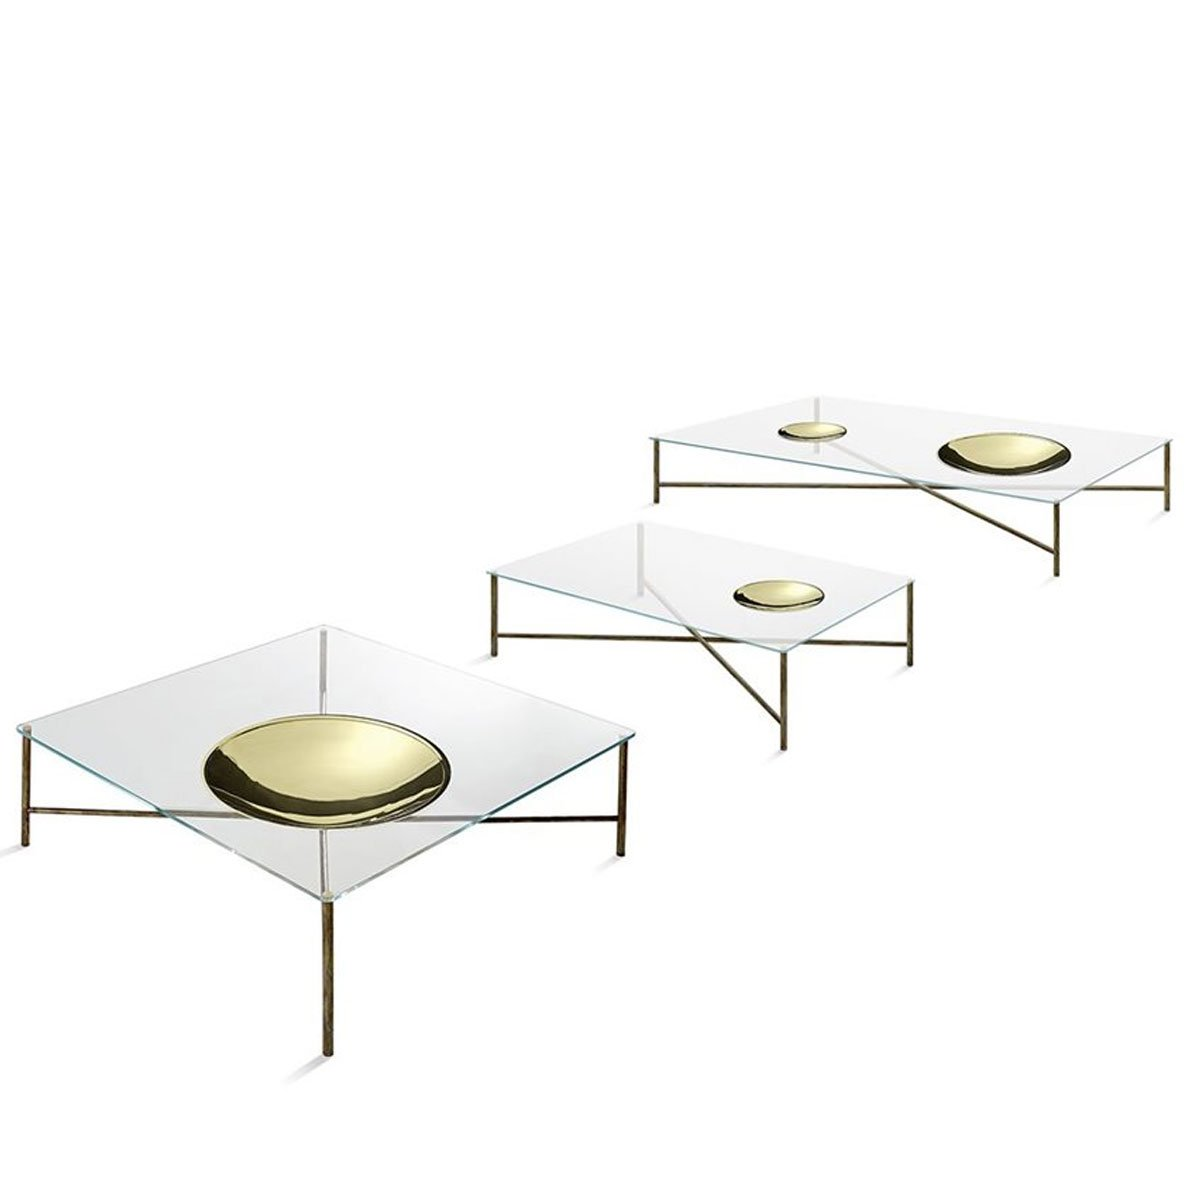 Golden Moon Glass And Brass Coffee Table By Gallotti Radice Klarity Glass Furniture